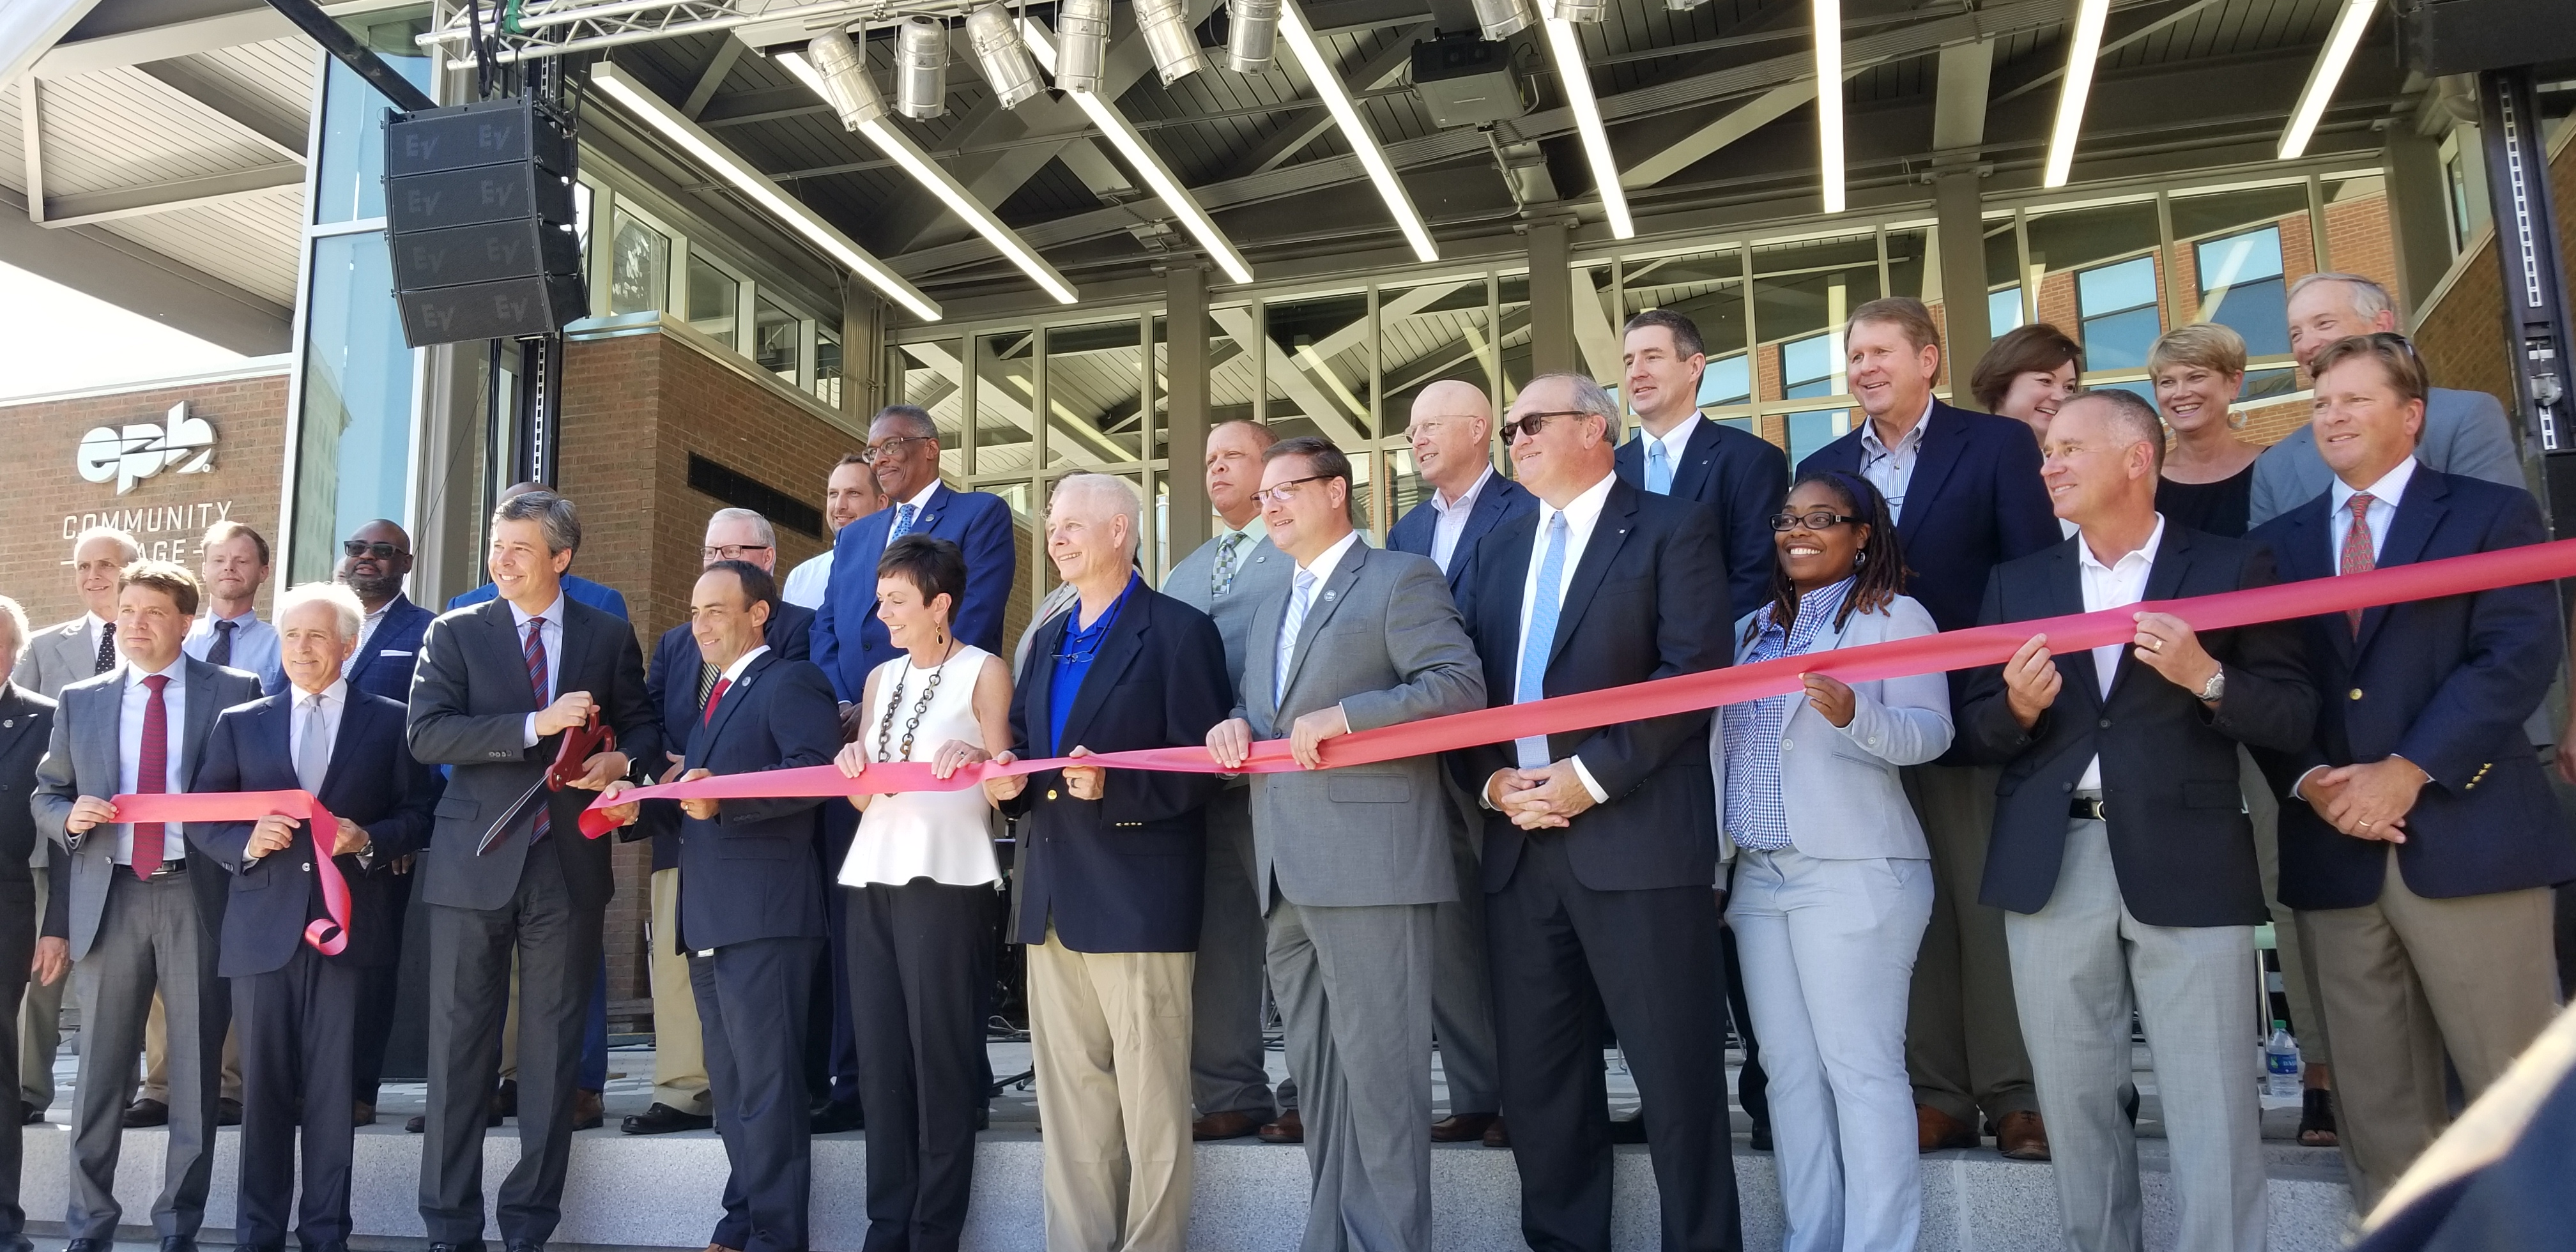 Miller Park Community Partners Participate in Ribbon Cutting for Miller Park Re-Opening Celebration